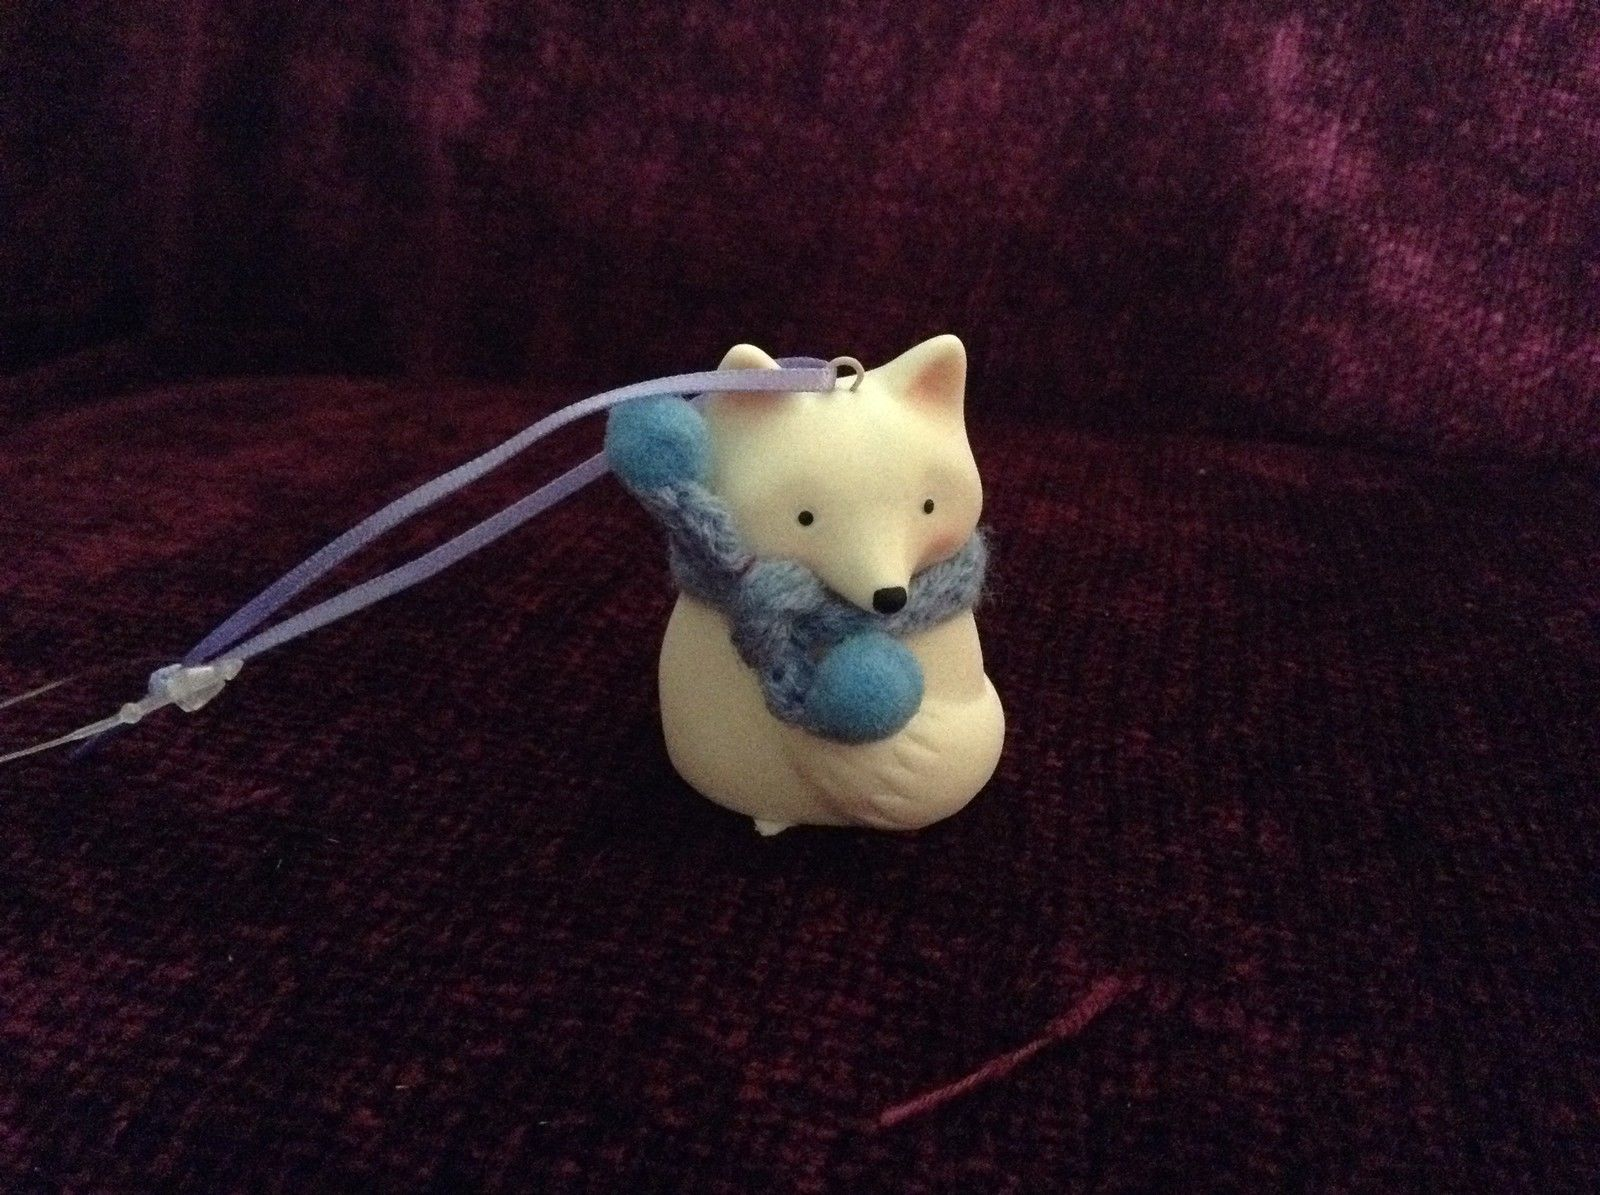 Small Porcelain Fox Figurine with Knitted Scarf Available in Different Colors